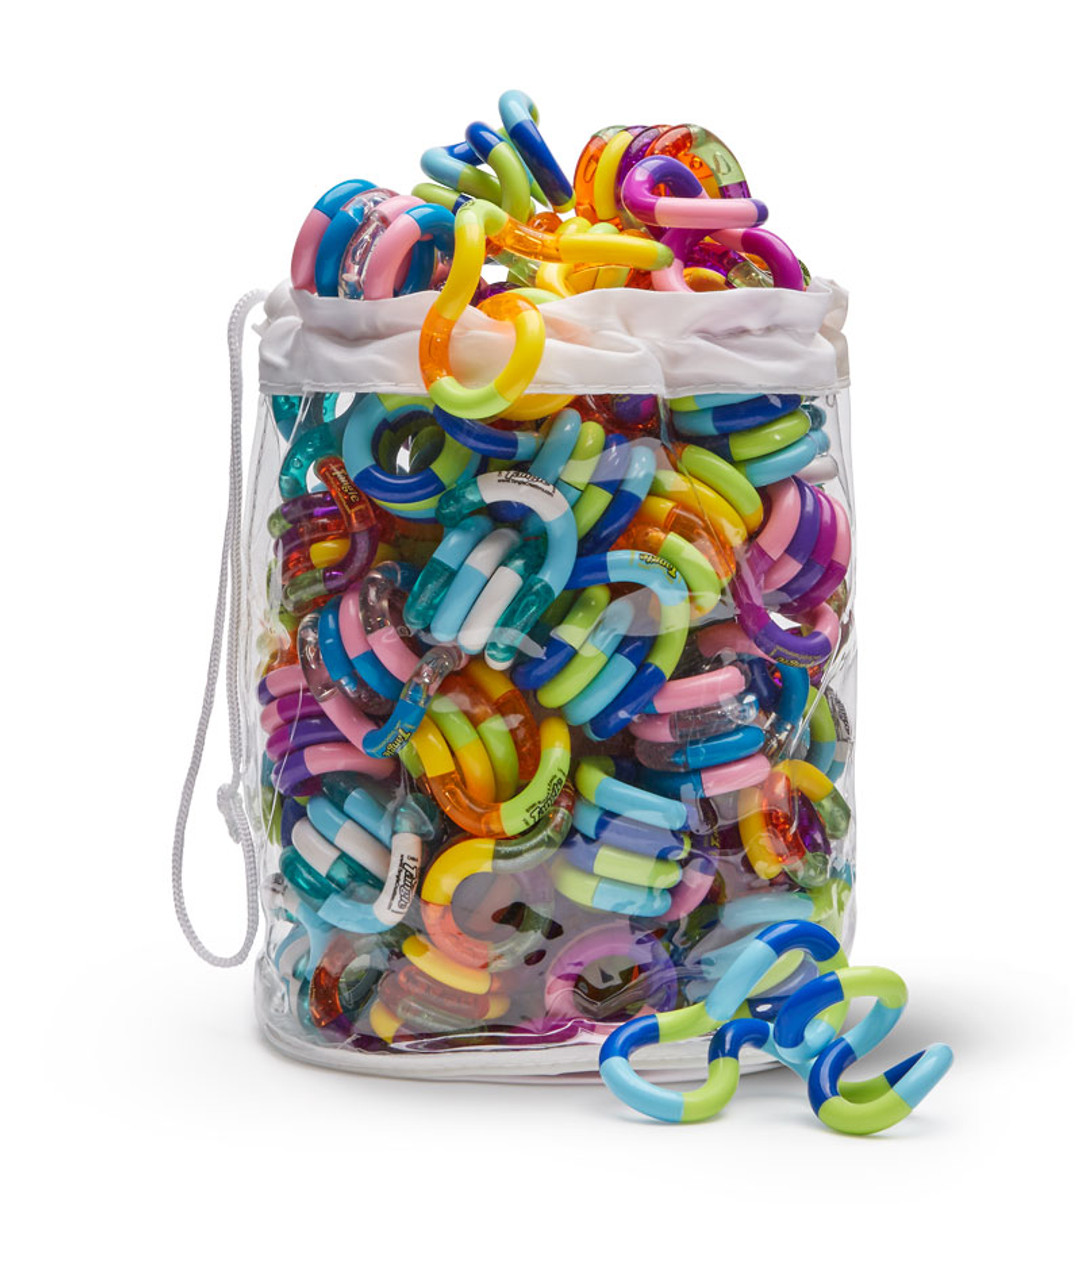 Tangle Toy; set of 50 in vinyl bag